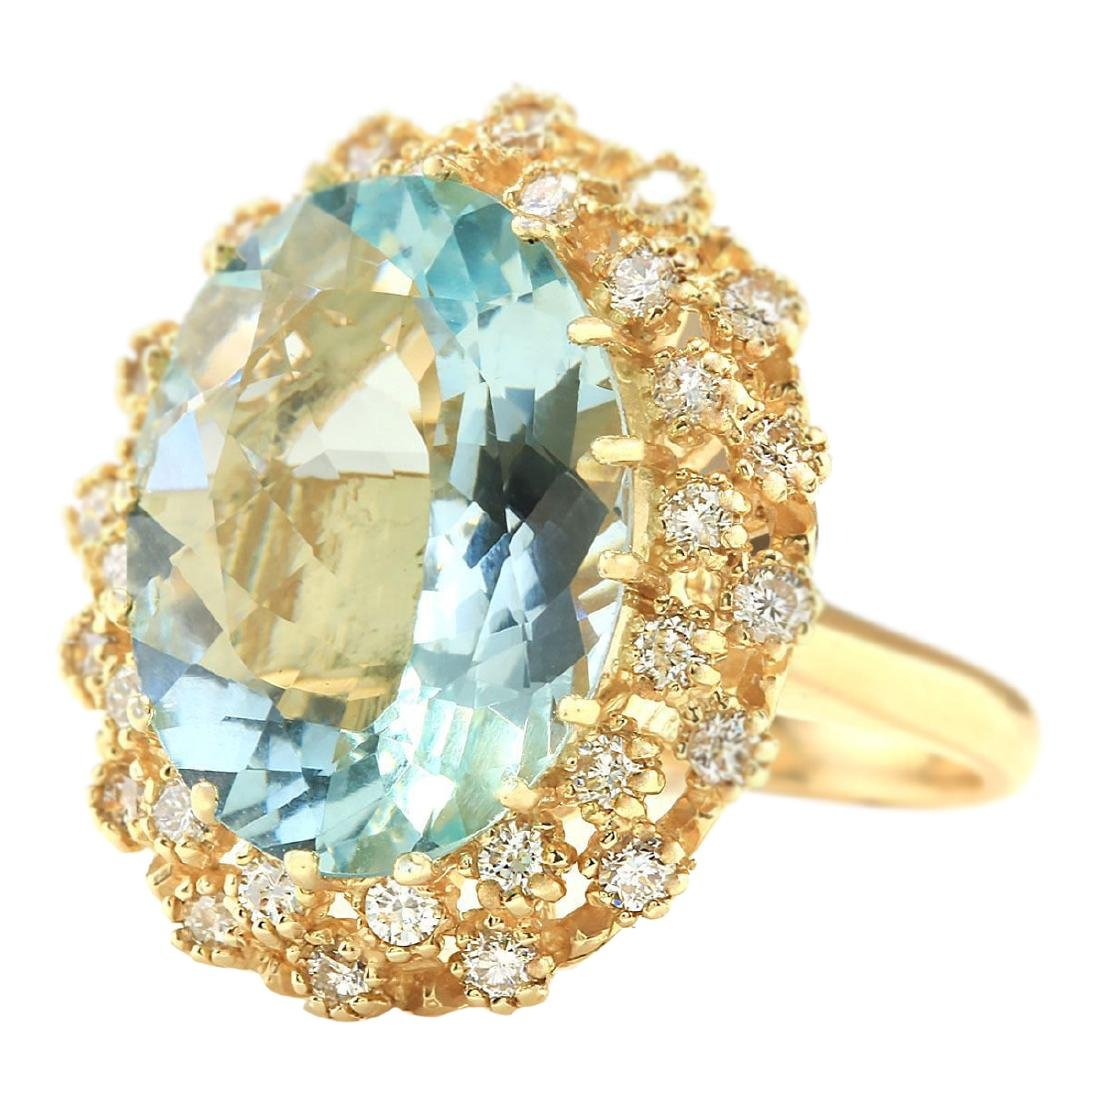 10.28 CTW Natural Aquamarine And Diamond Ring In 18K - 2